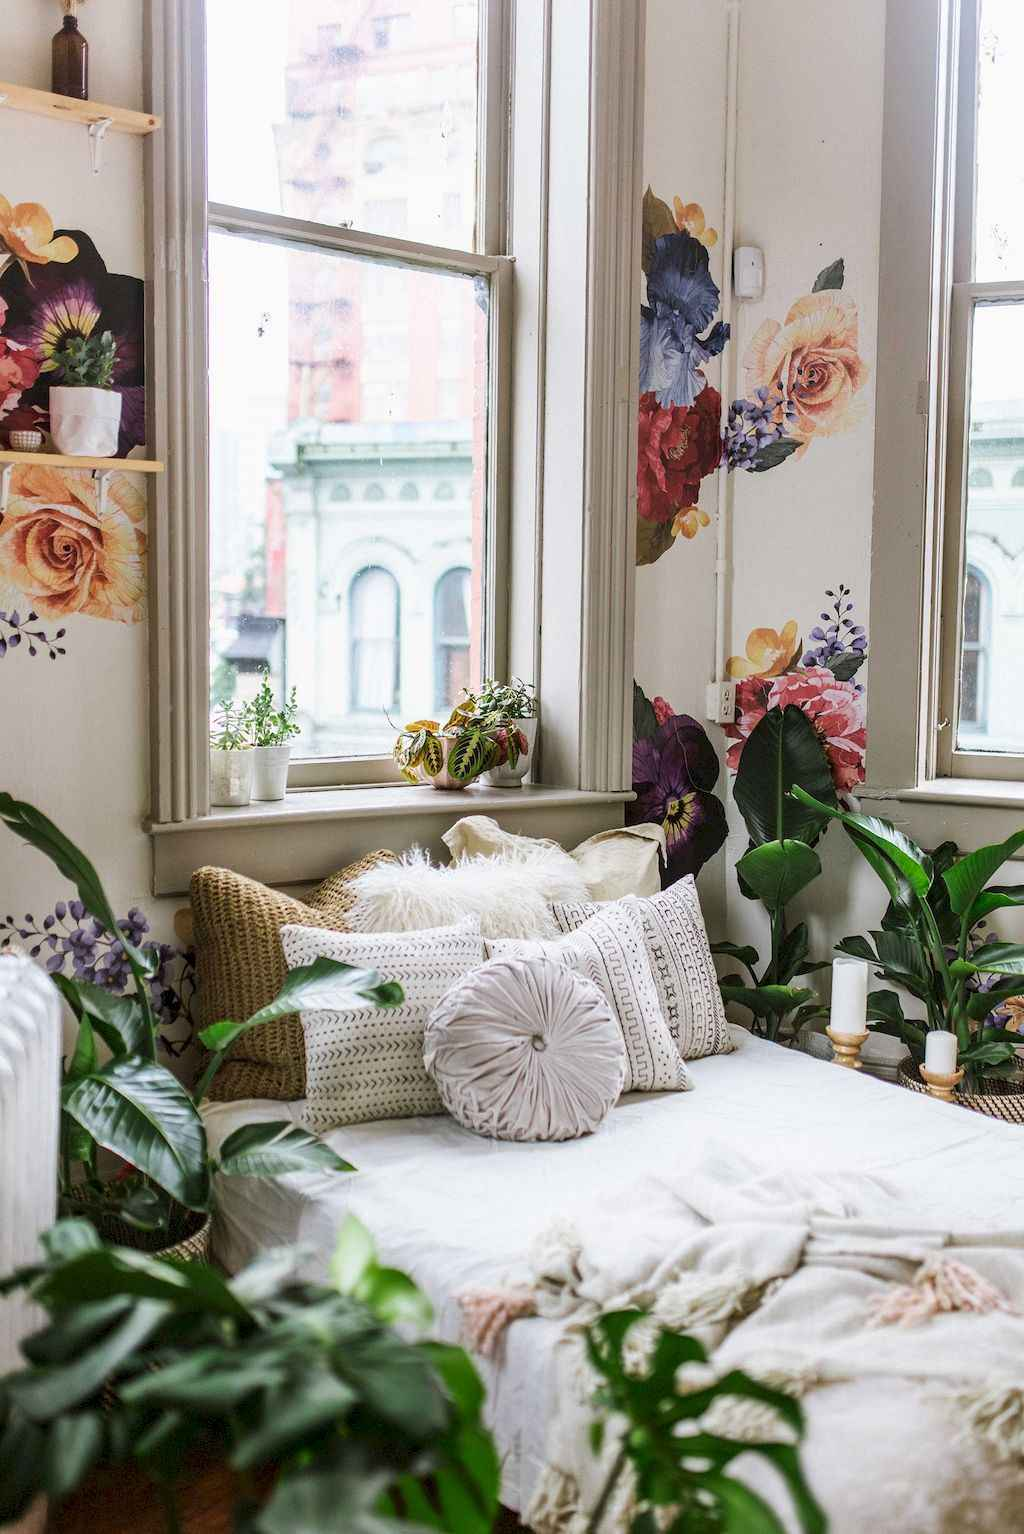 Clever college apartment decorating ideas on a budget (67)